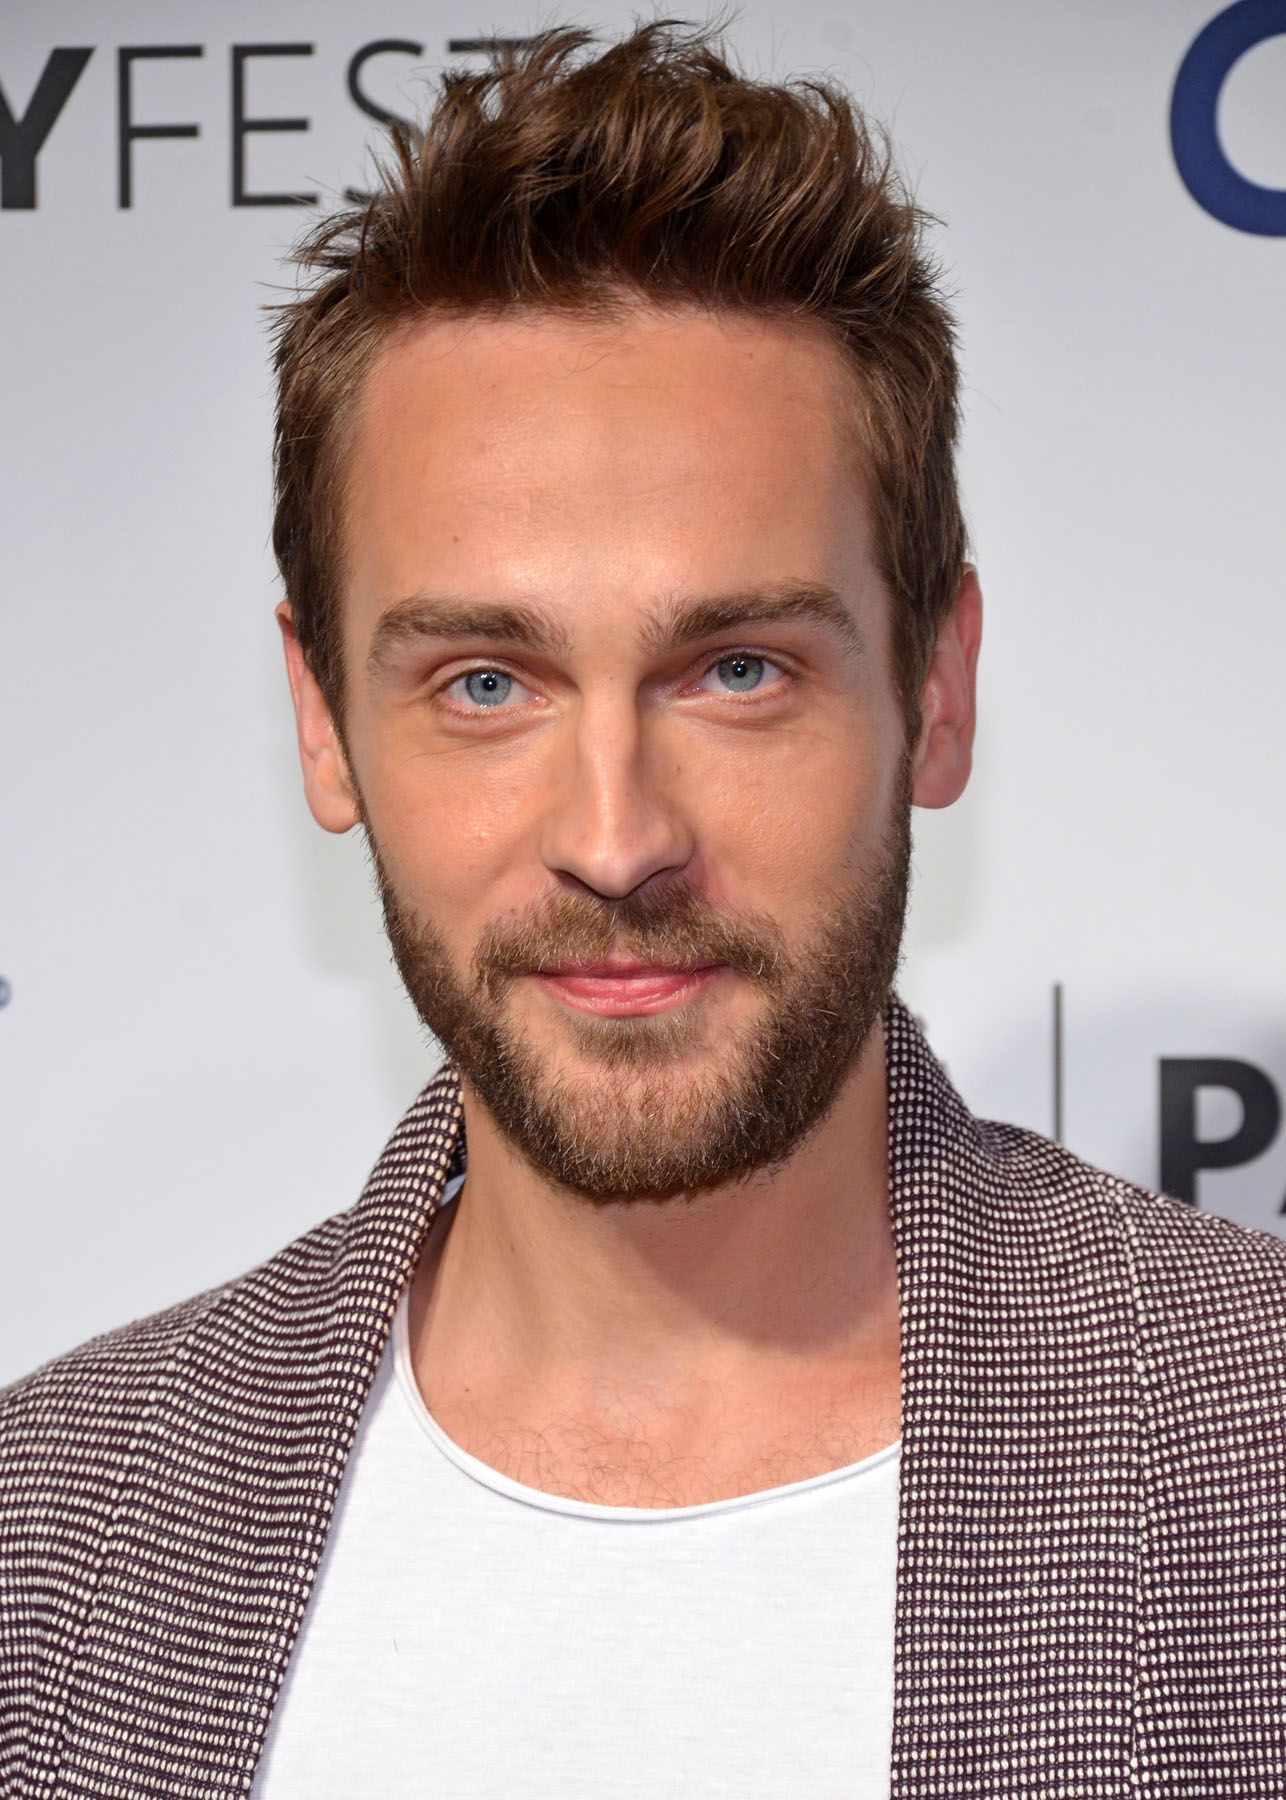 tom mison tumblrtom mison instagram, tom mison filmography, tom mison height, tom mison tumblr, tom mison nicole beharie, tom mison gif hunt, tom mison interview, tom mison eye color, tom mison one day, tom mison sleepy hollow, tom mison and charlotte coy, tom mison gif, tom mison and his wife, tom mison audiobook, tom mison listal